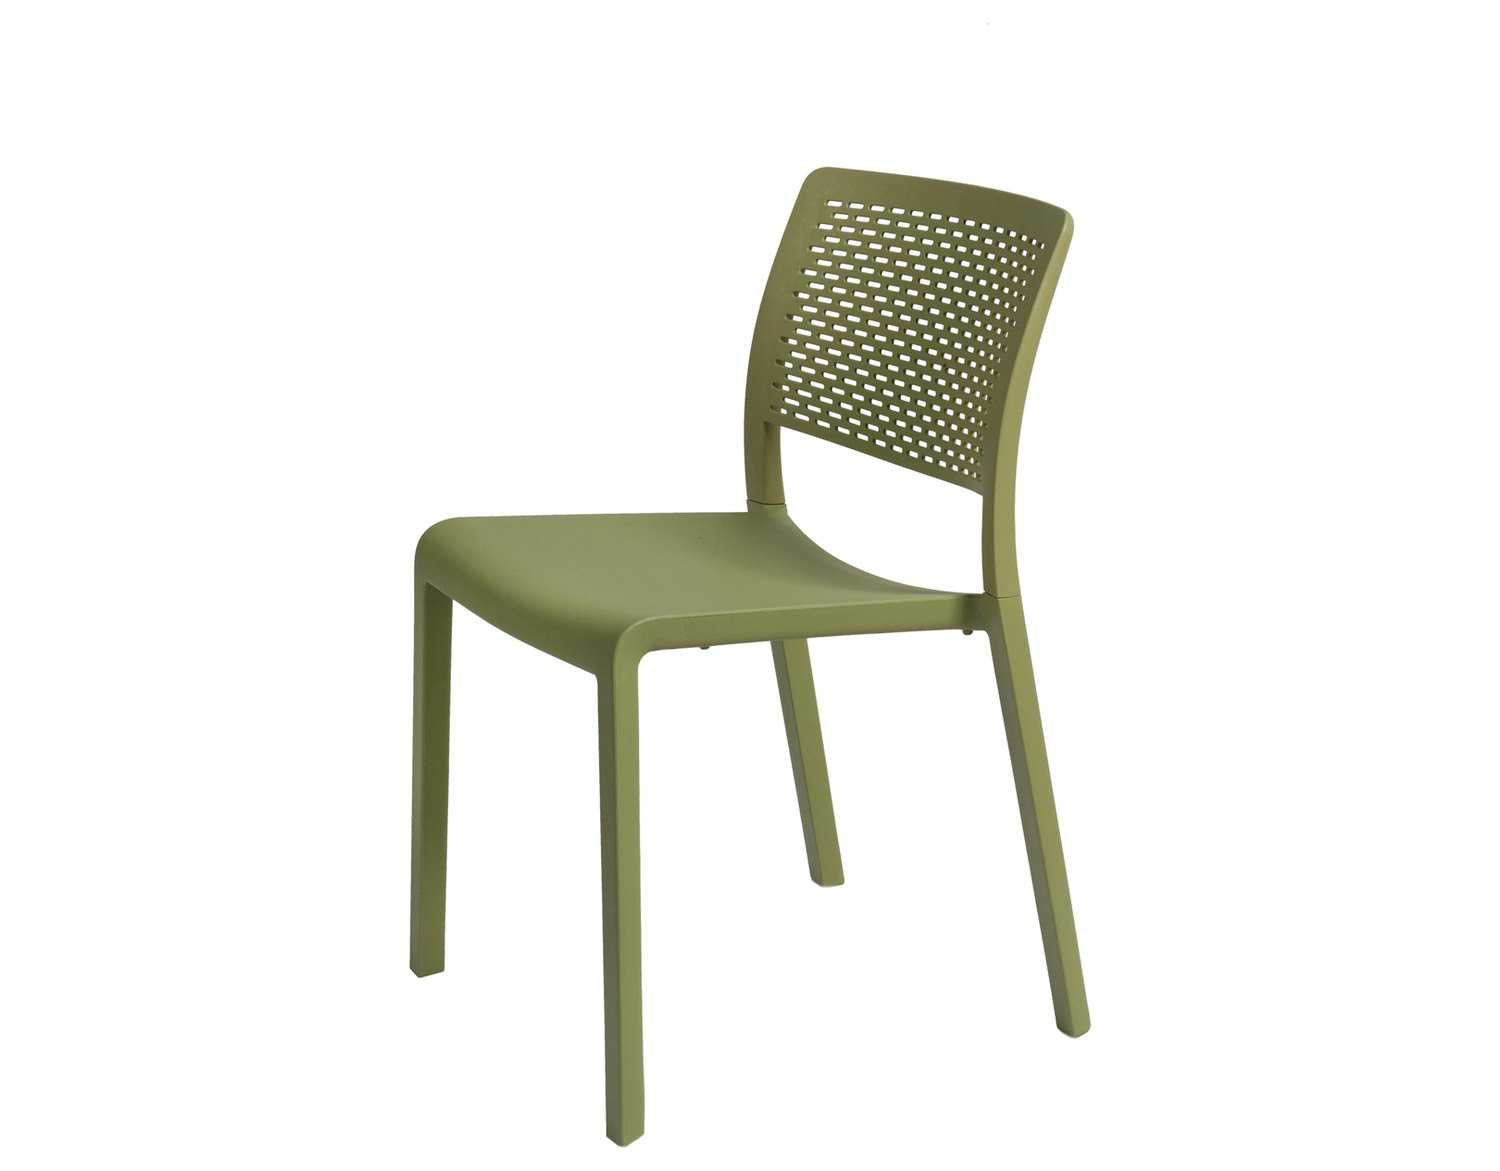 resols resol trama recycled plastic green olive side chair solar  resol trama recycled plastic green olive side chair zoom